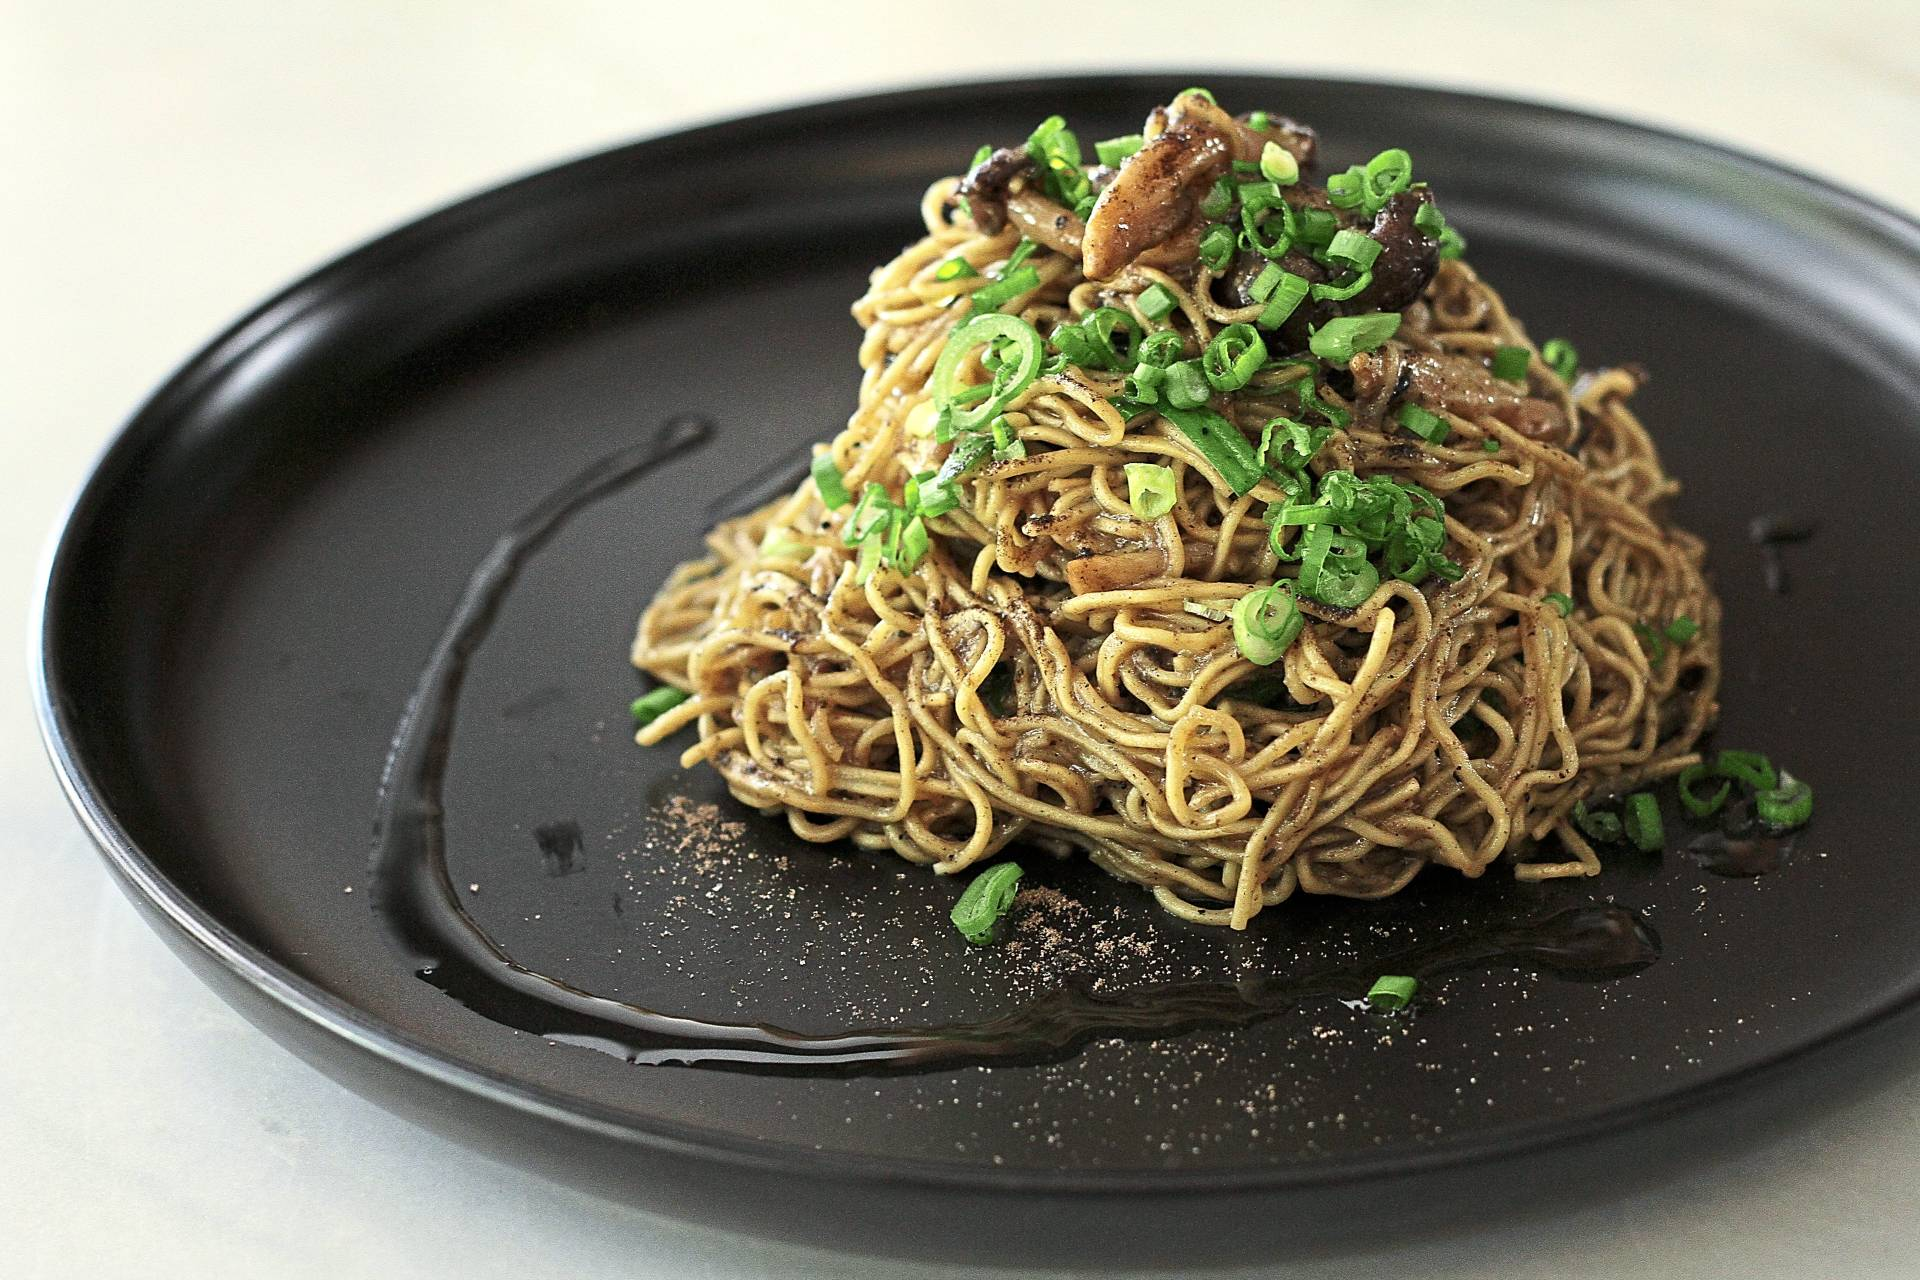 The truffle egg noodles are not bad, but not as illustrious as other offerings on the menu.